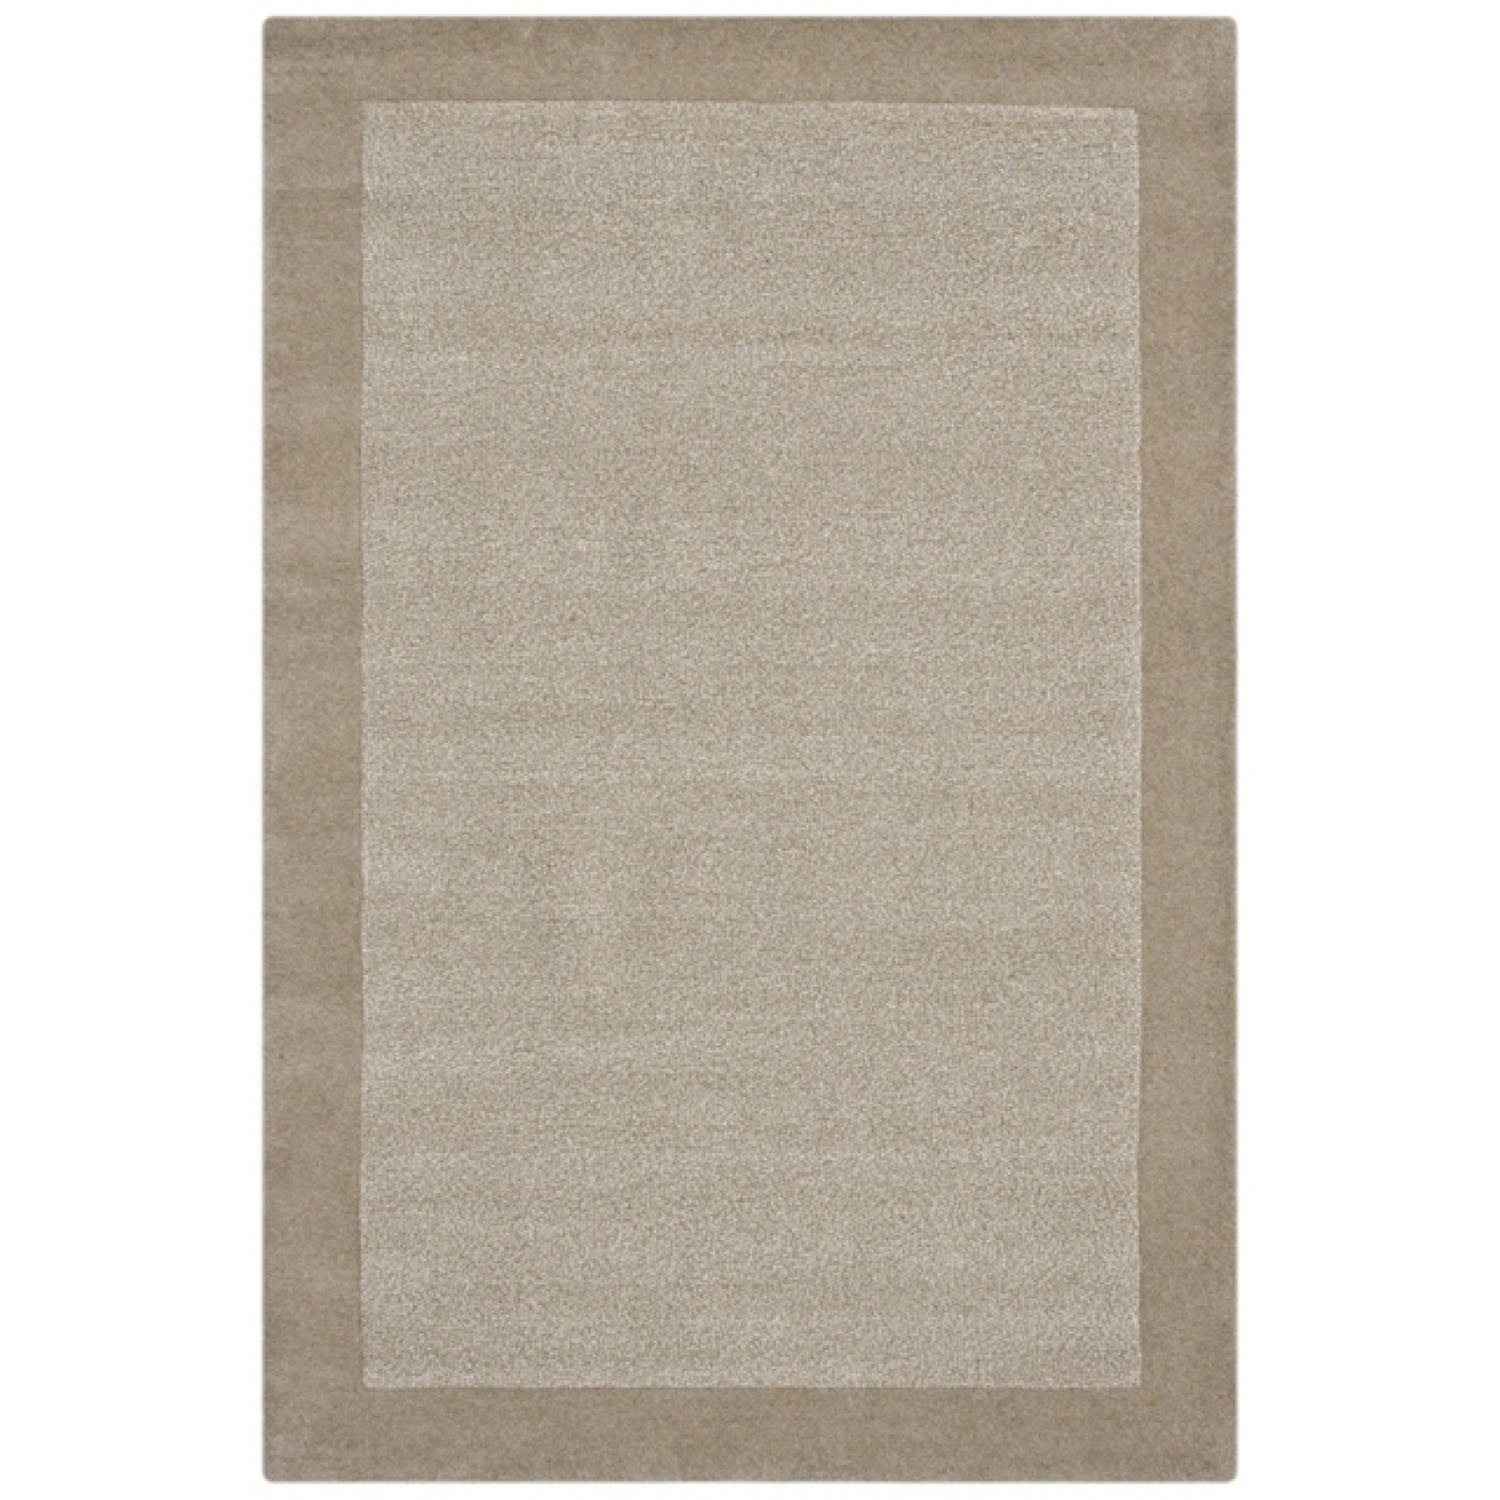 Image of Frith Rugs Ecb202 Ella Claire Naturals Collection Rug, 549cm X 366cm, Grey